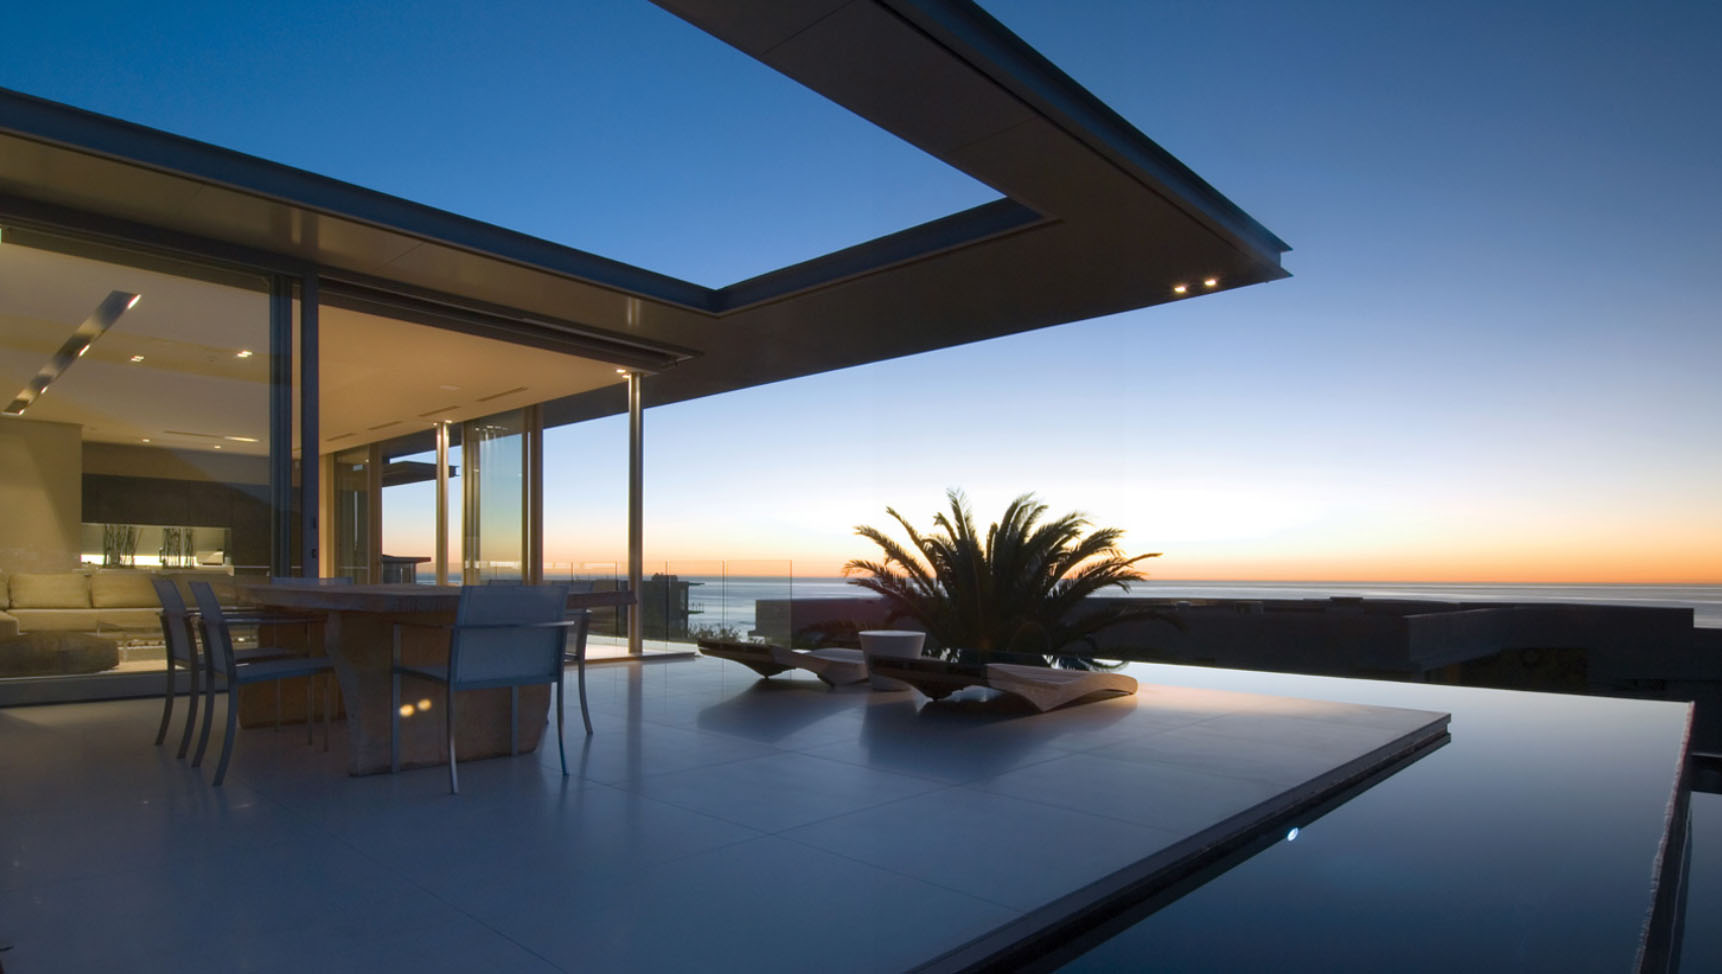 Minimalist ocean view home in south africa idesignarch for Modern beautiful house